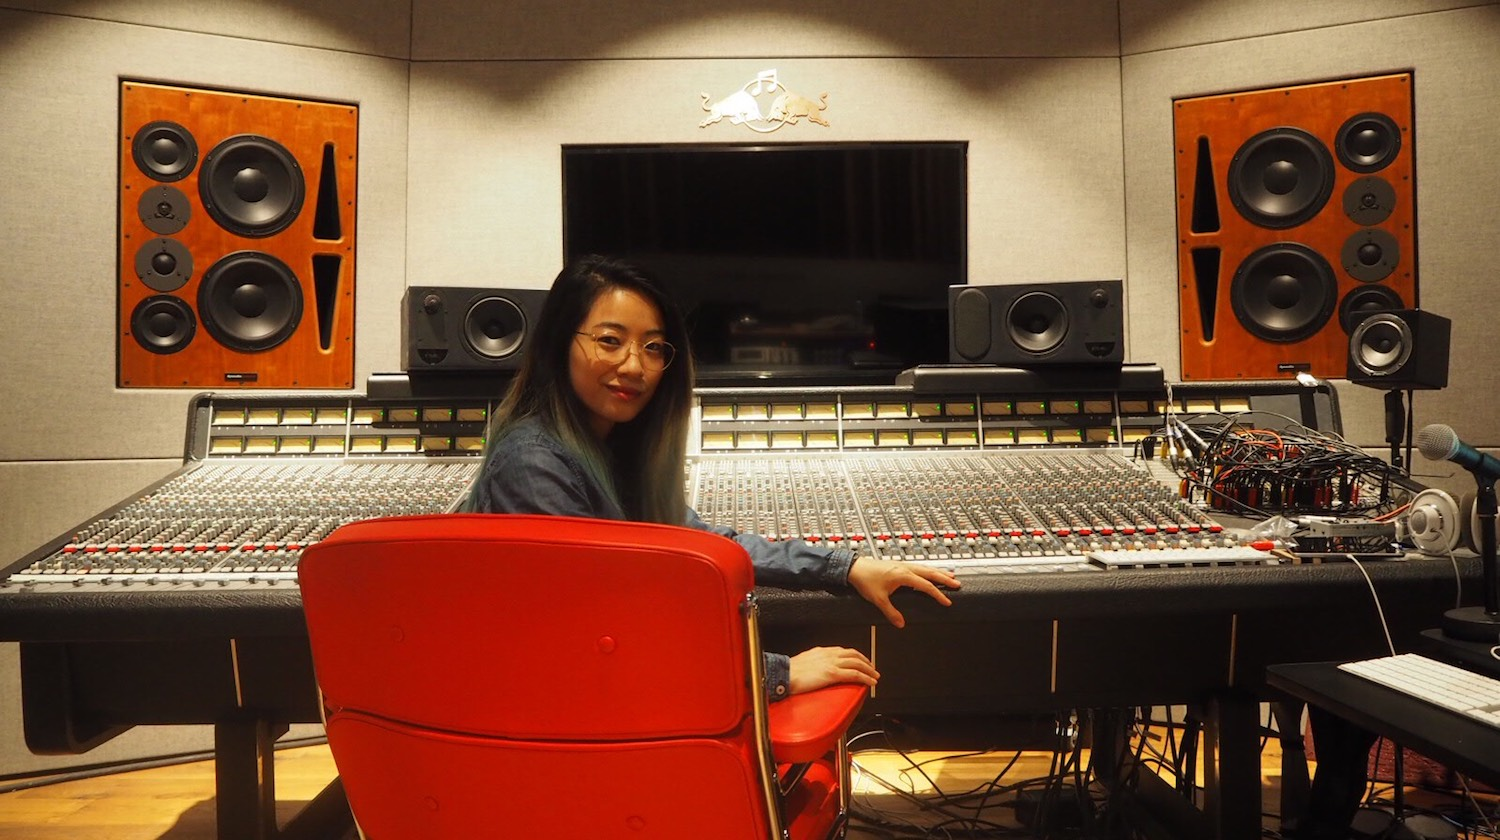 The Happy Bull Amsterdam Working At Red Bull Studios Amsterdam As Assistant Audio Engineer